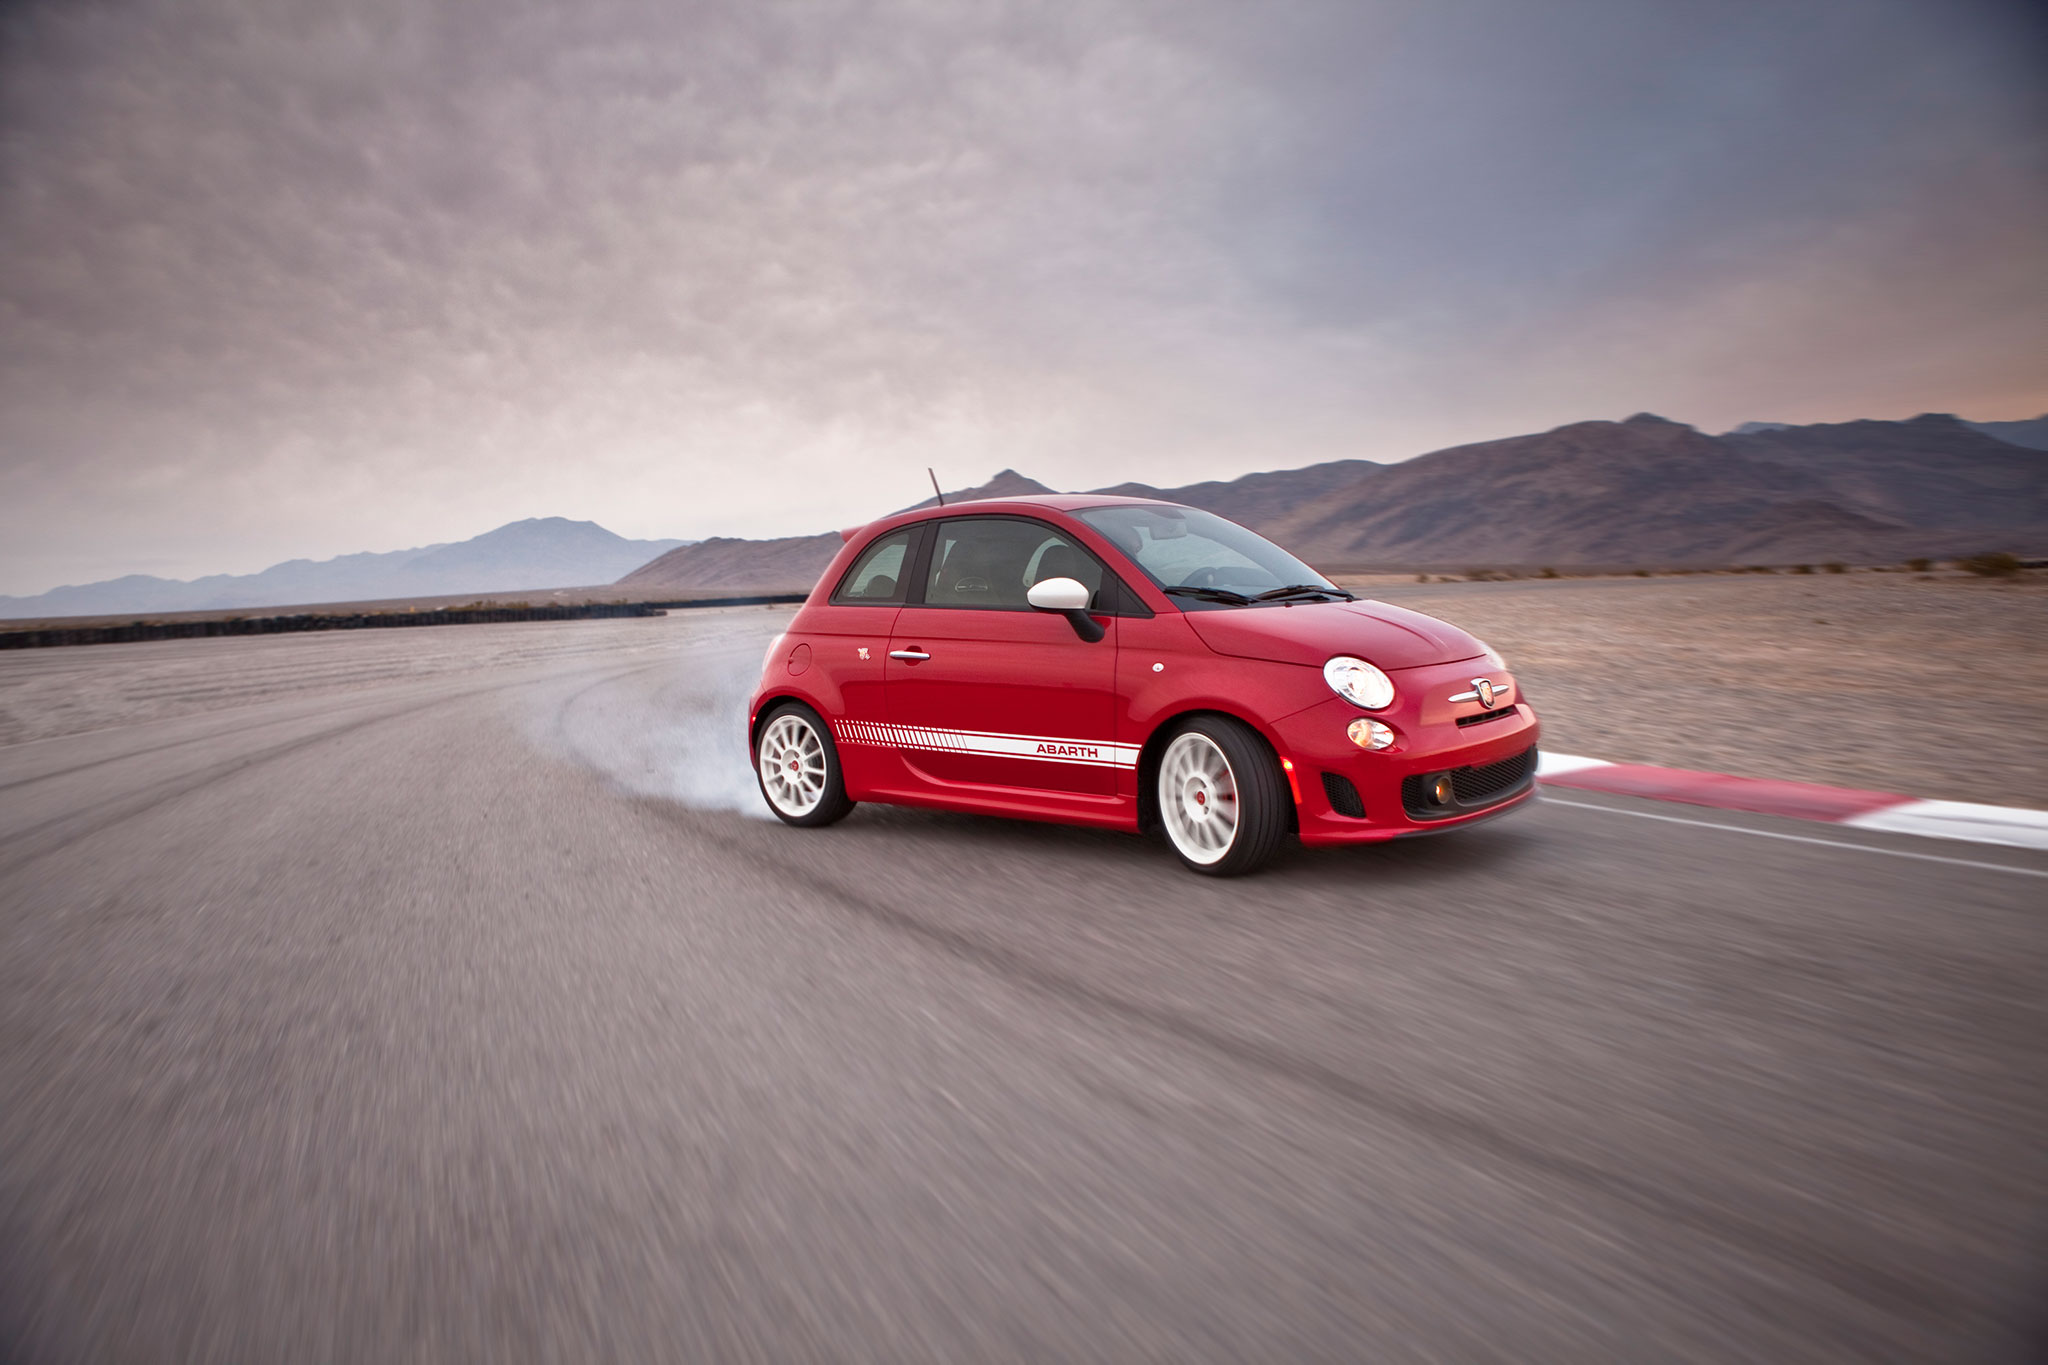 2014 Fiat 500 Abarth Passengers Side Drift1